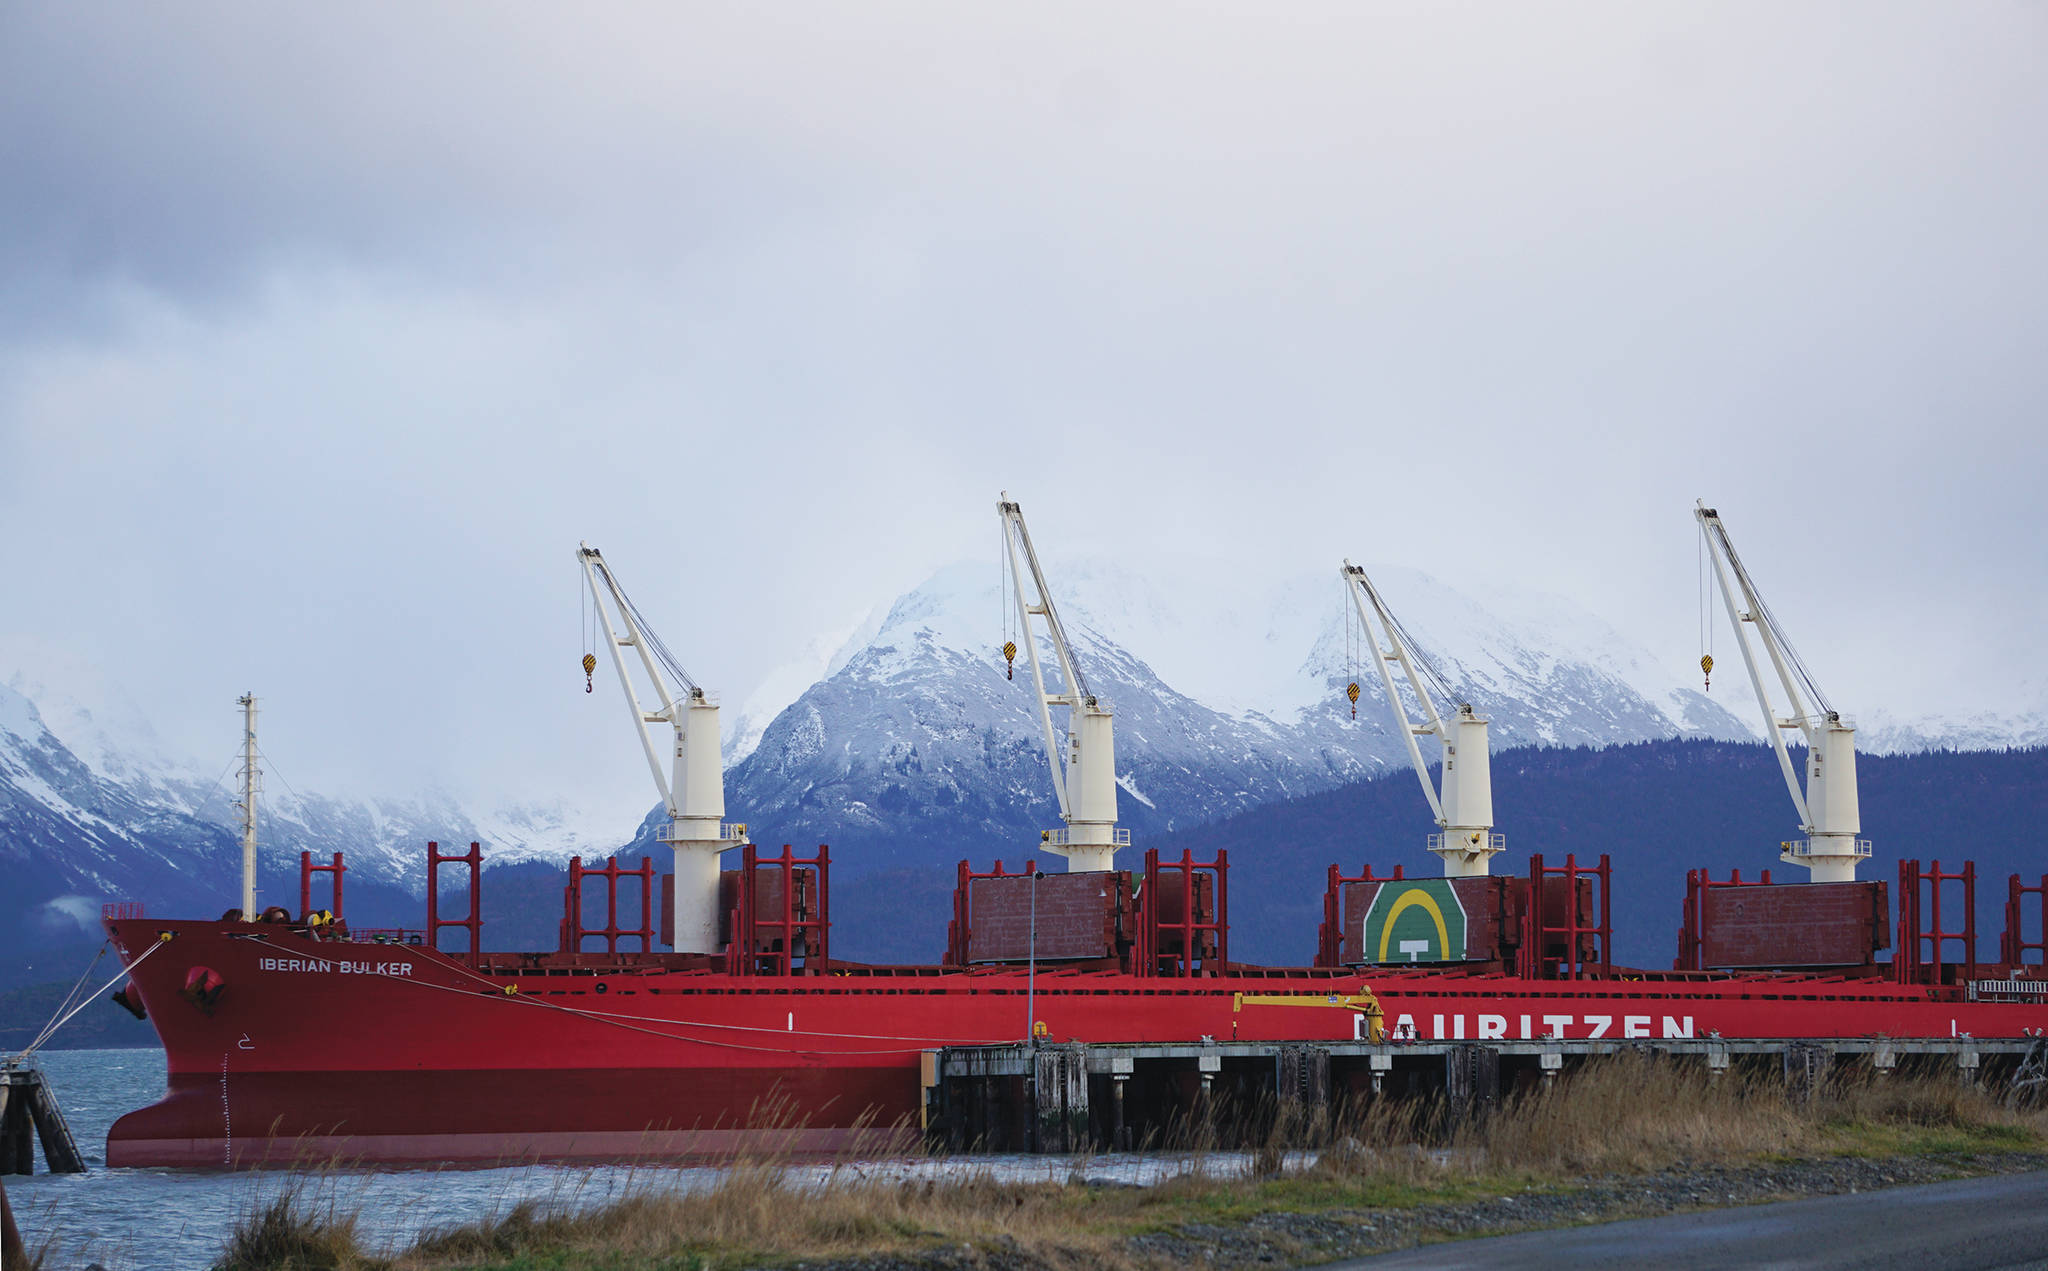 The Iberian Bulker is moored at the Deep Water Dock on Tuesday, Dec. 17, 2019, in Homer, Alaska, while being loaded with 22,000 metric tons of sulfur to be shipped to China. (Photo by Michael Armstrong/Homer News)